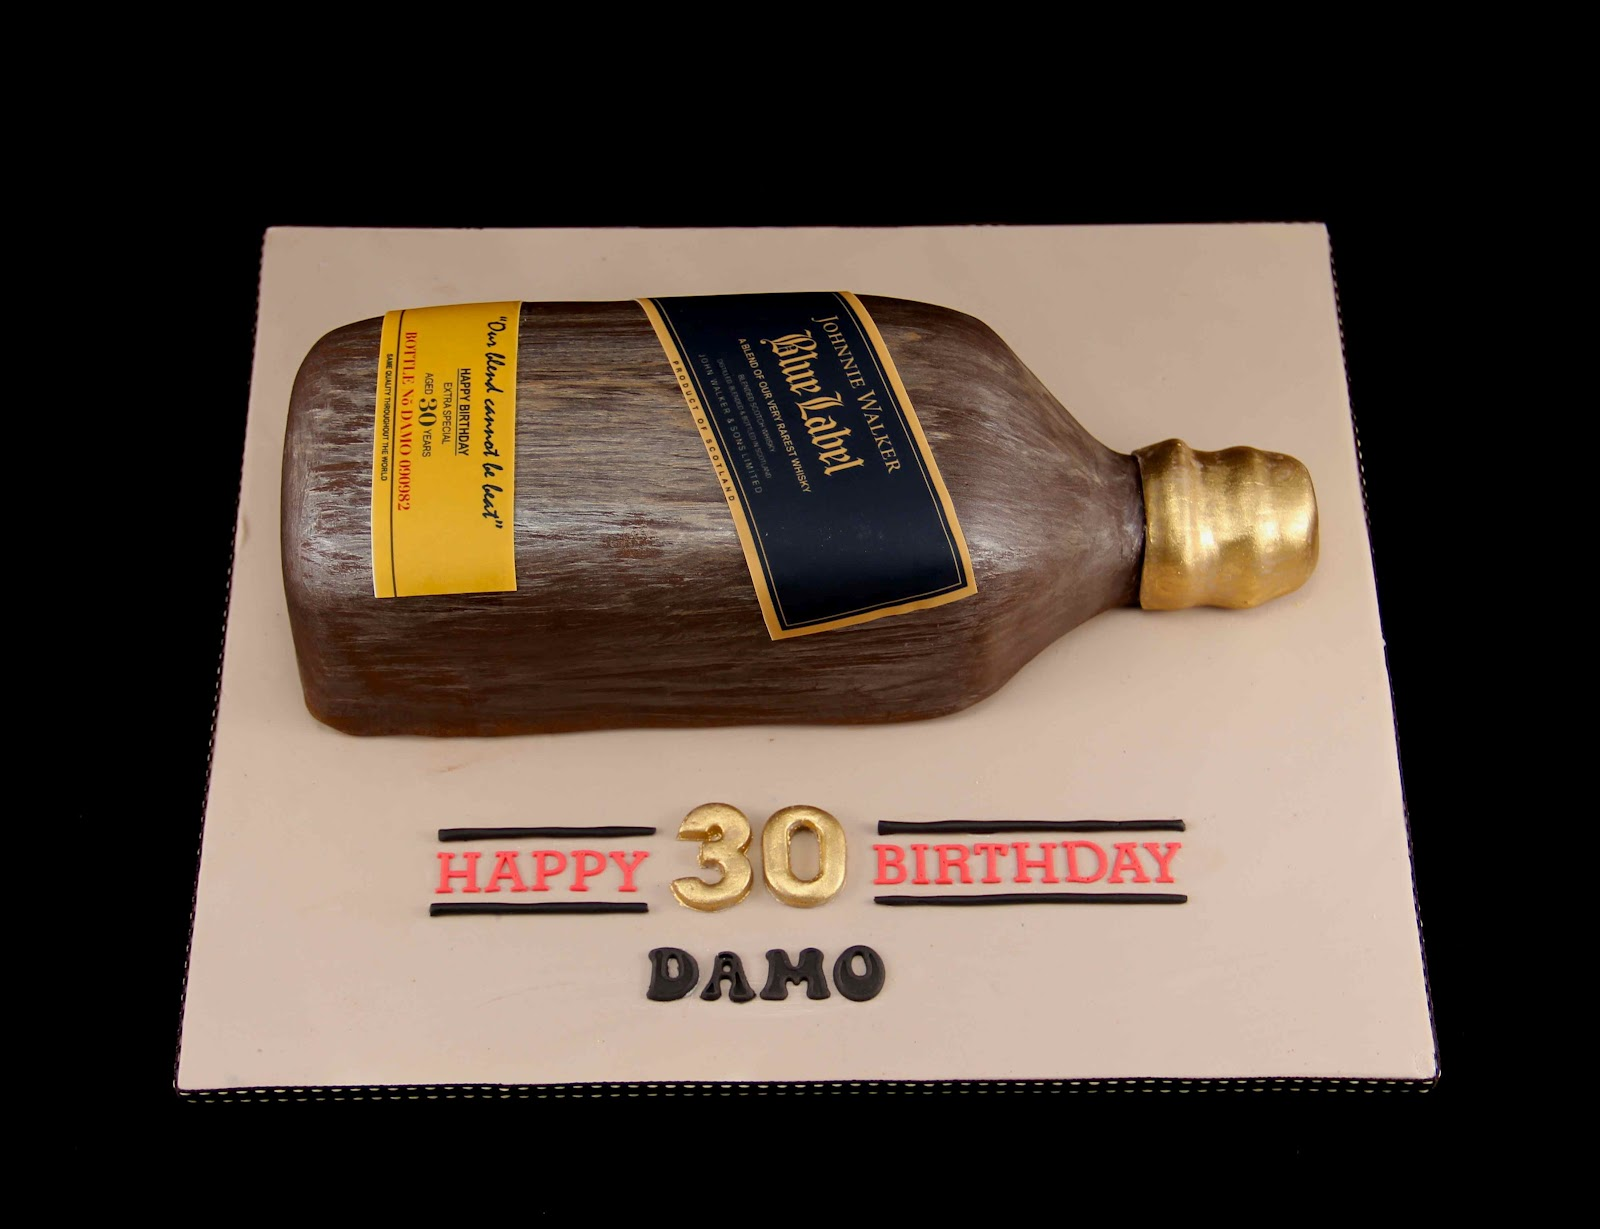 Johnnie Walker Blue Label Cake http://bakerzdad.blogspot.com/2012/09/johnnie-walker-blue-label-cake.html